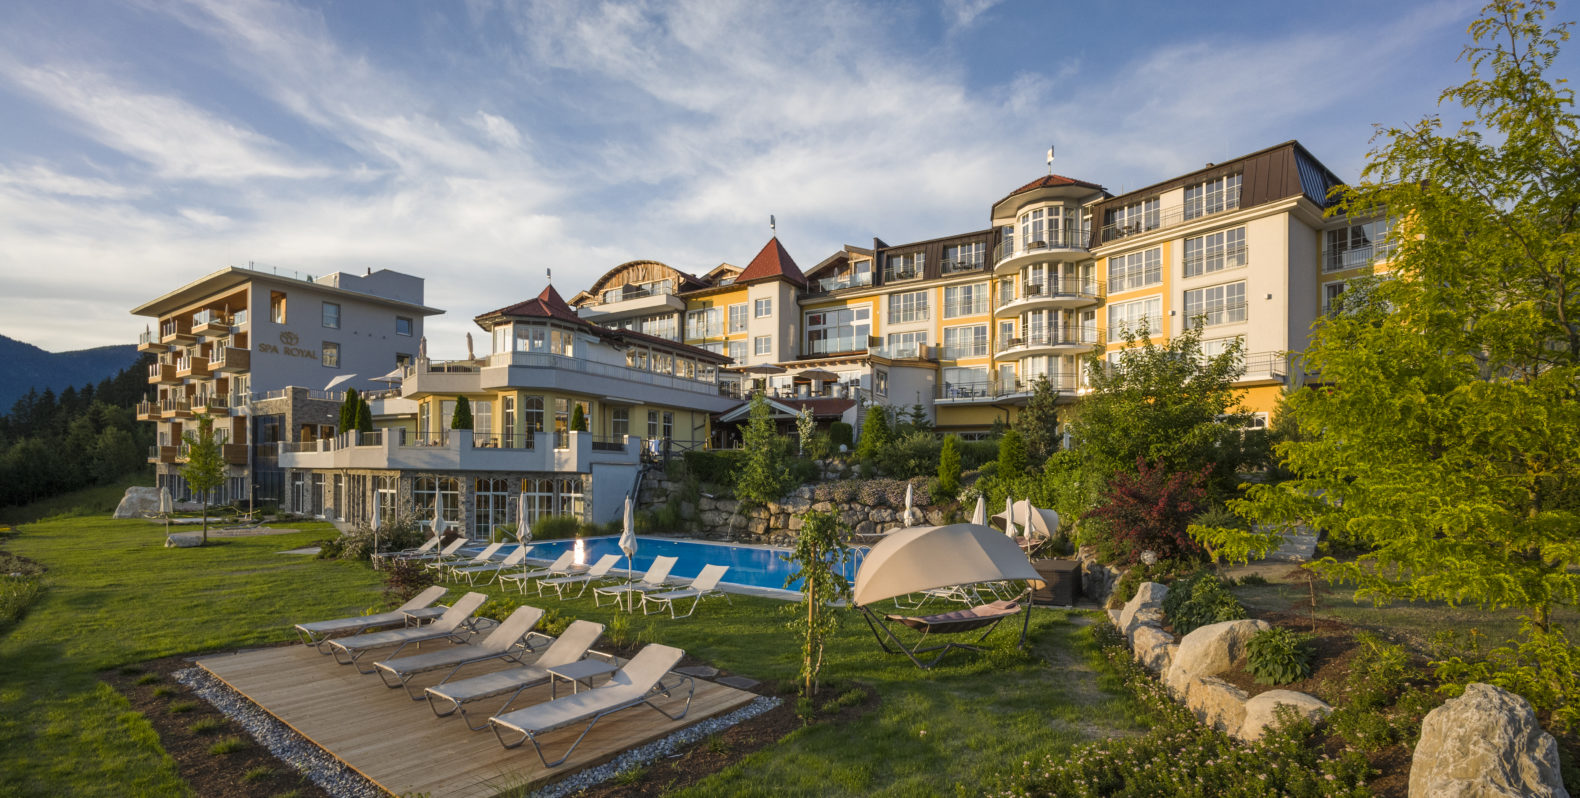 outside-exterior-building-garden-swimmingpool-sports-sunbeds-terrace-panorama-royal-hotel-austria